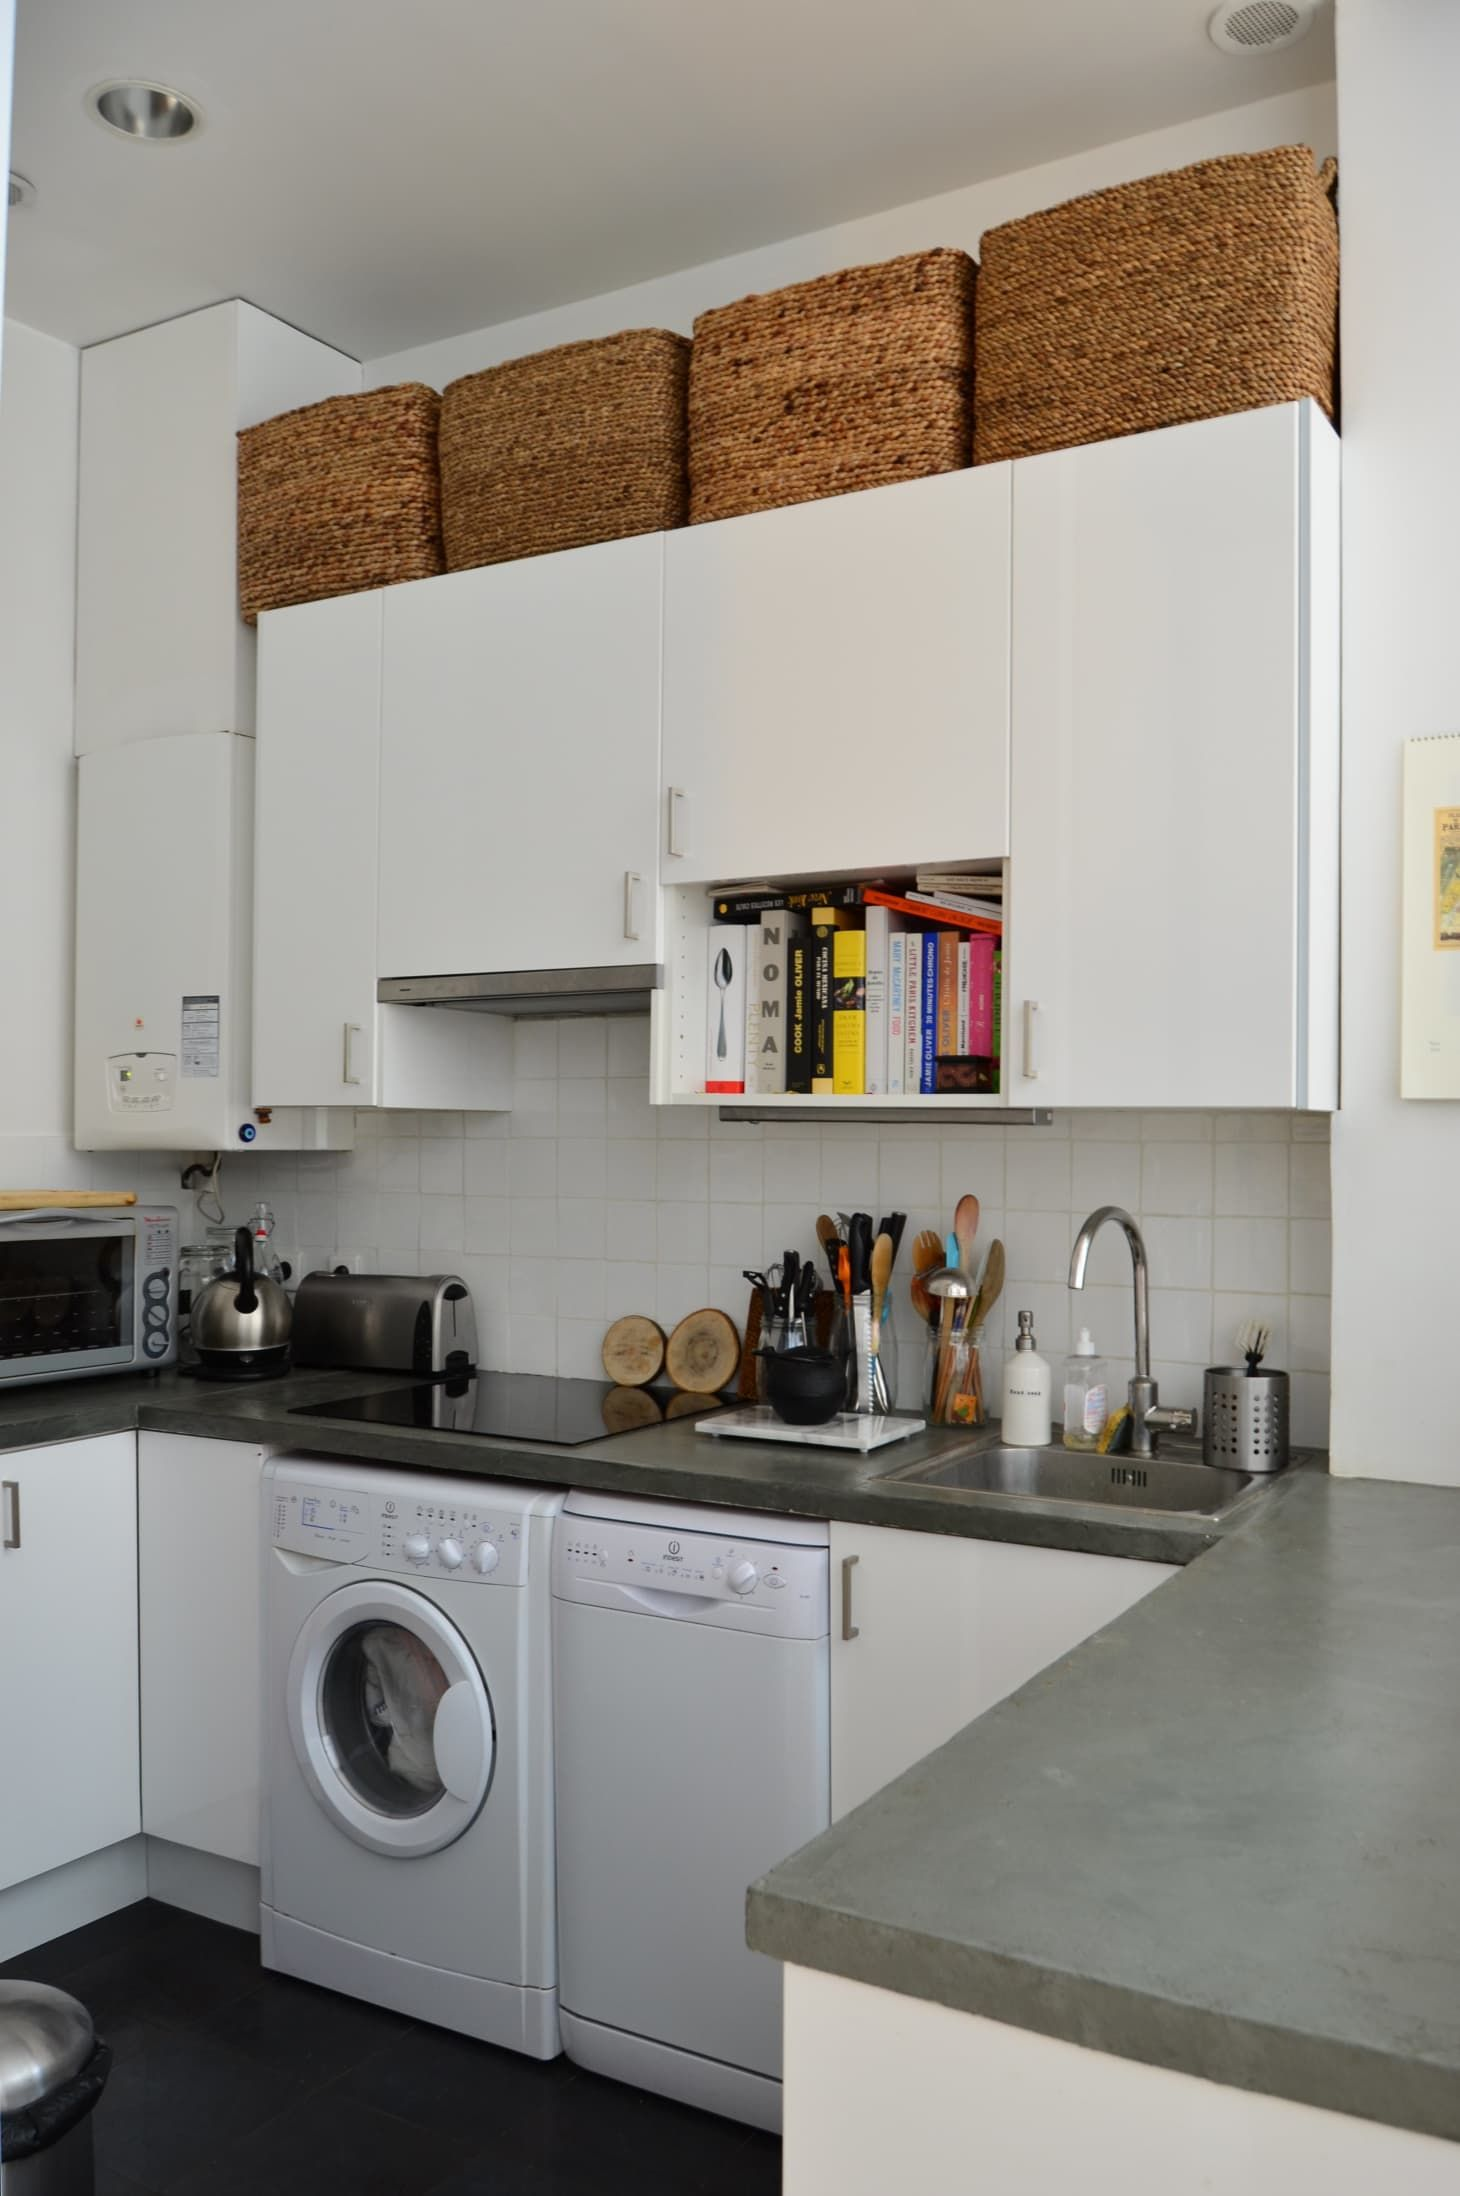 9 ways to make existing storage cabinets more space efficient paris kitchen above kitchen on kitchen organization cabinet id=86537